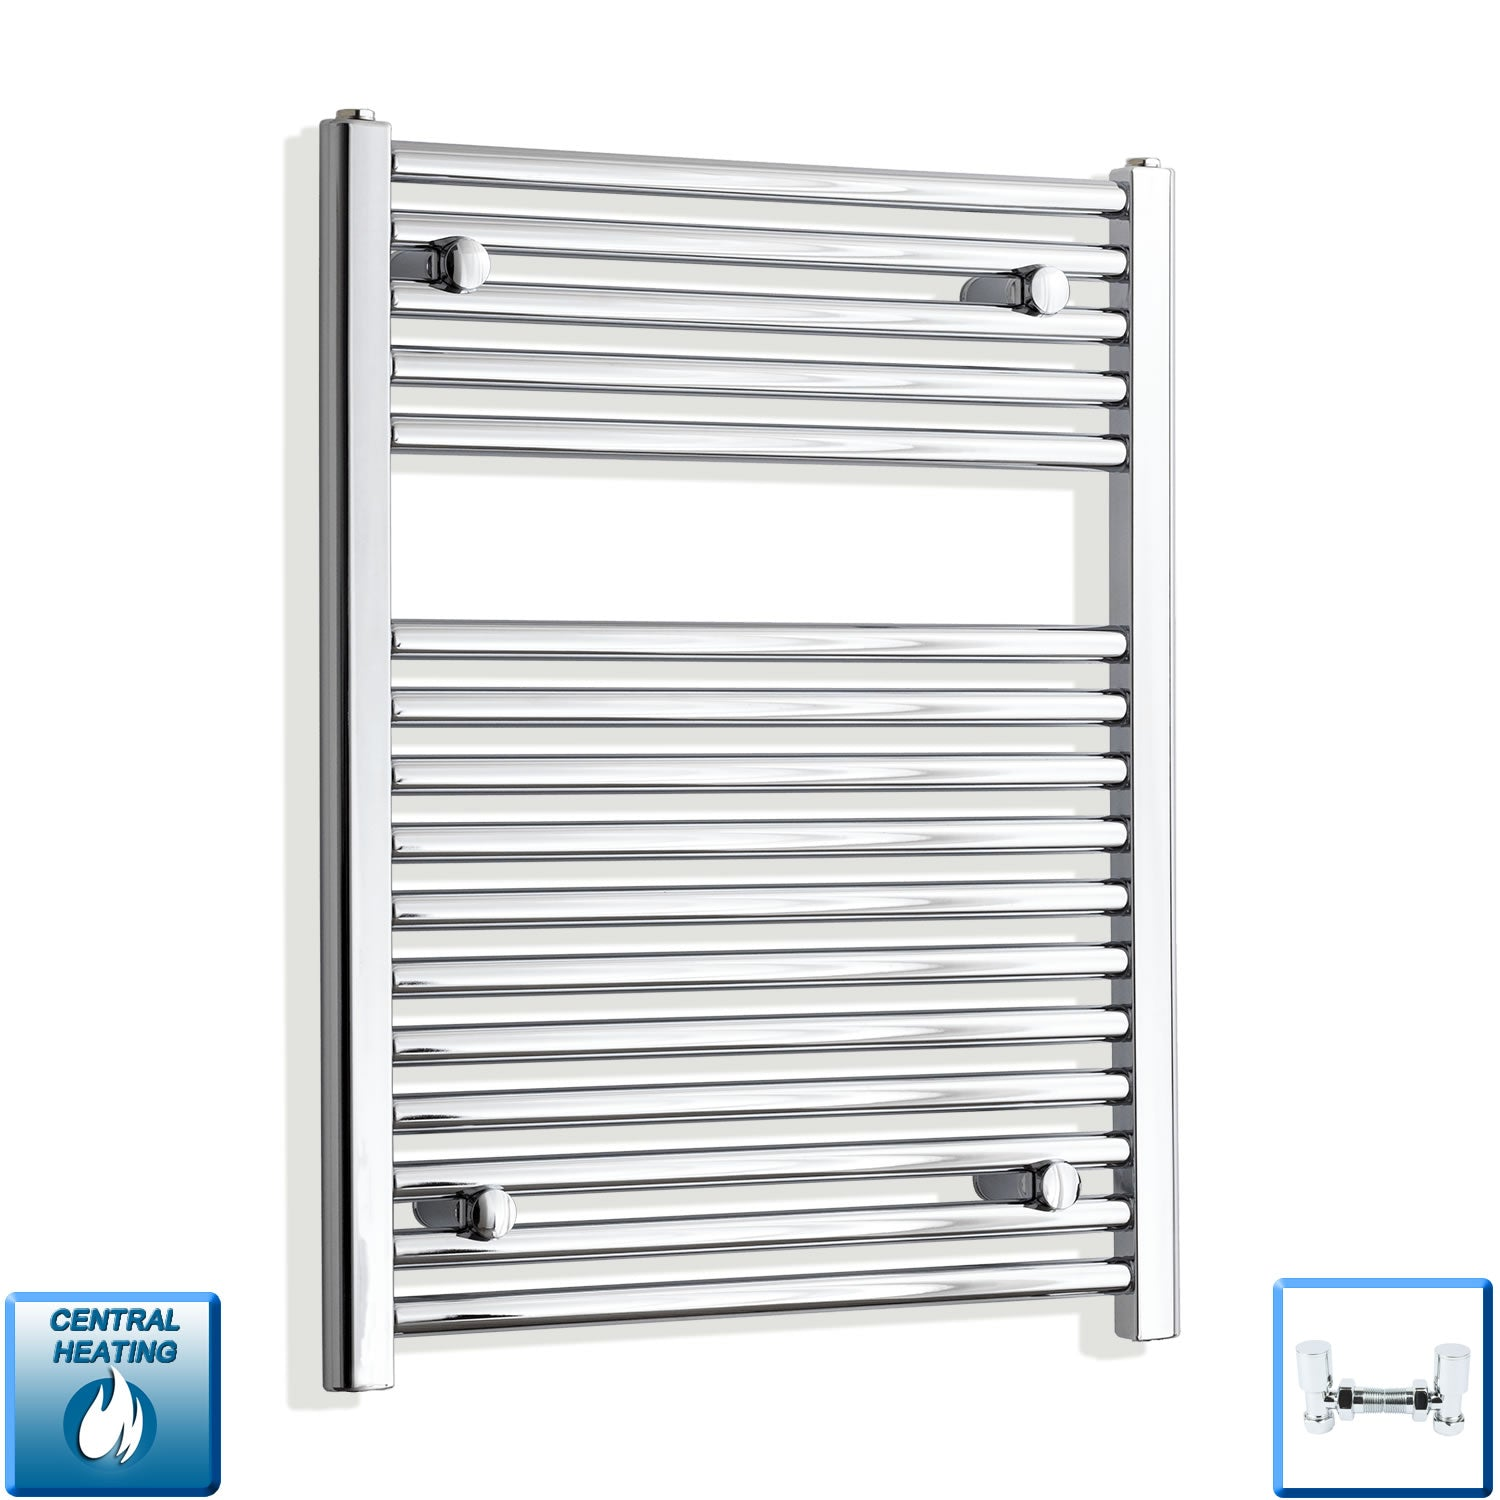 500mm Wide 750mm High Chrome Towel Rail Radiator With Angled Valve